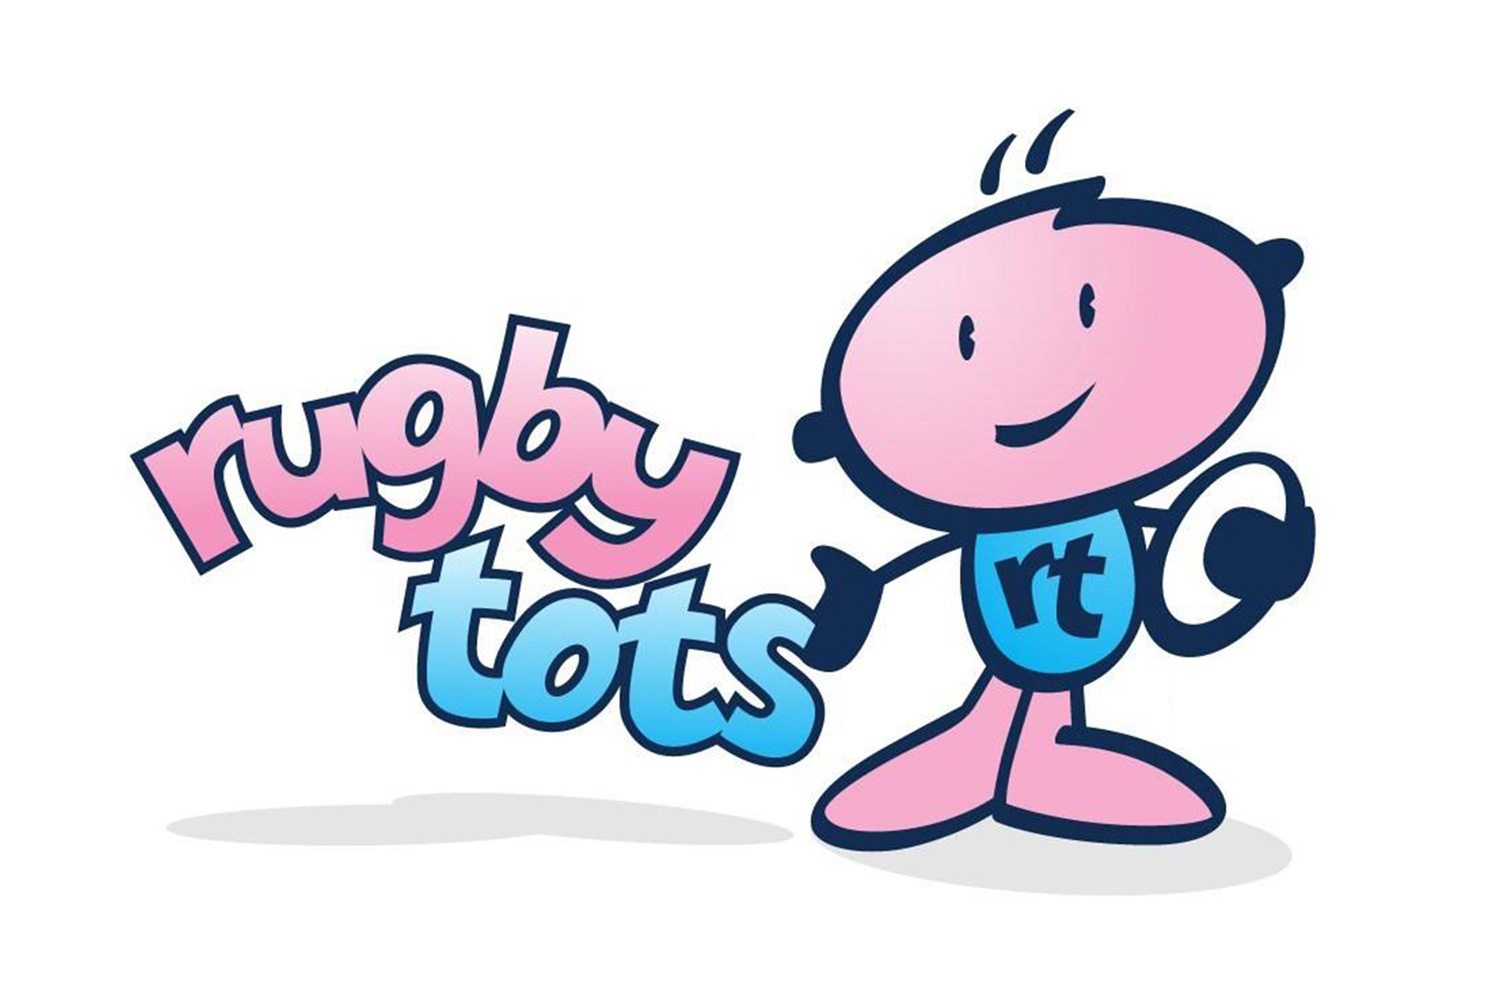 Old Rugbytots logo